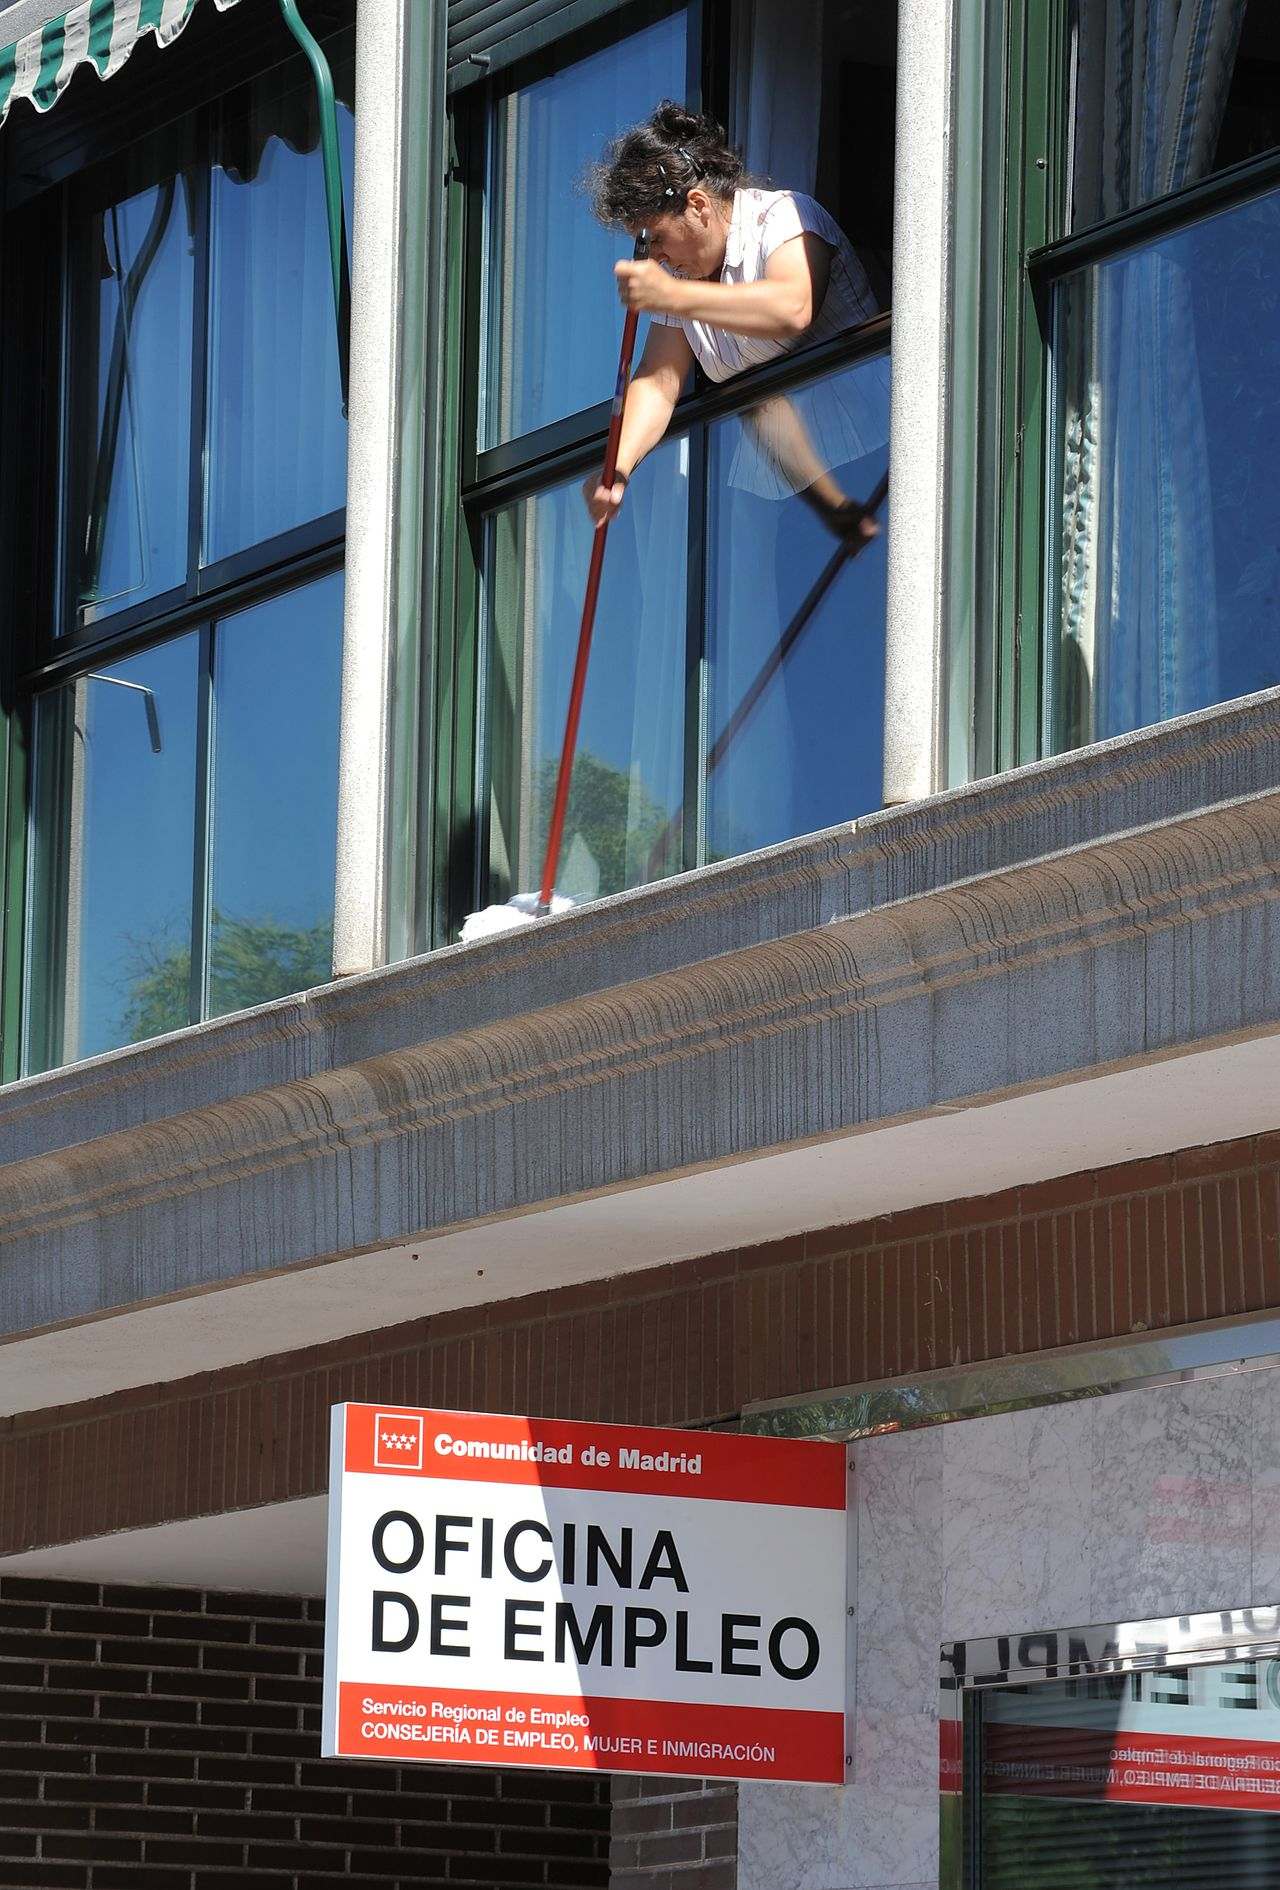 A woman cleans her window ledge above an employment office in Madrid, Spain, on Tuesday, June 15, 2010. Spanish Deputy Finance Minister Carlos Ocana said the country's 20 percent unemployment level is unsustainable. Photographer: Denis Doyle/Bloomberg